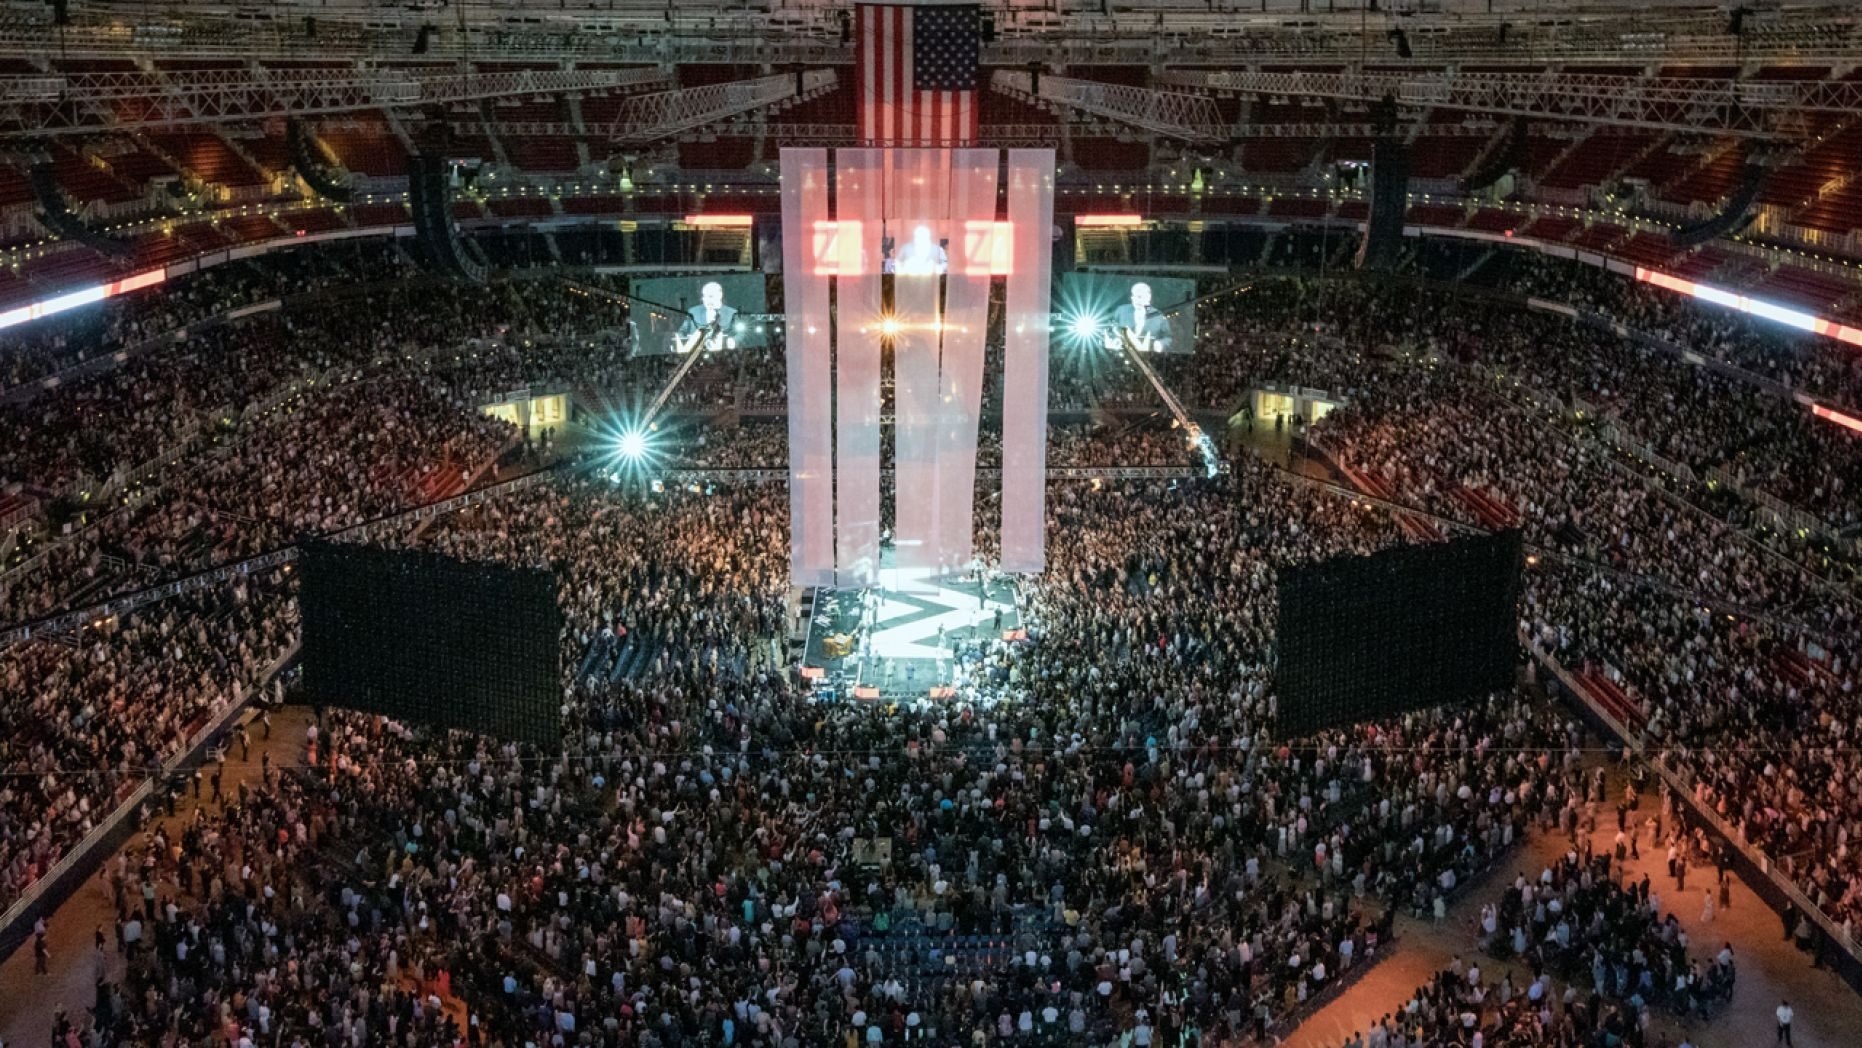 Over 36,000 attended the North American Youth Congress in St. Louis, Mo.